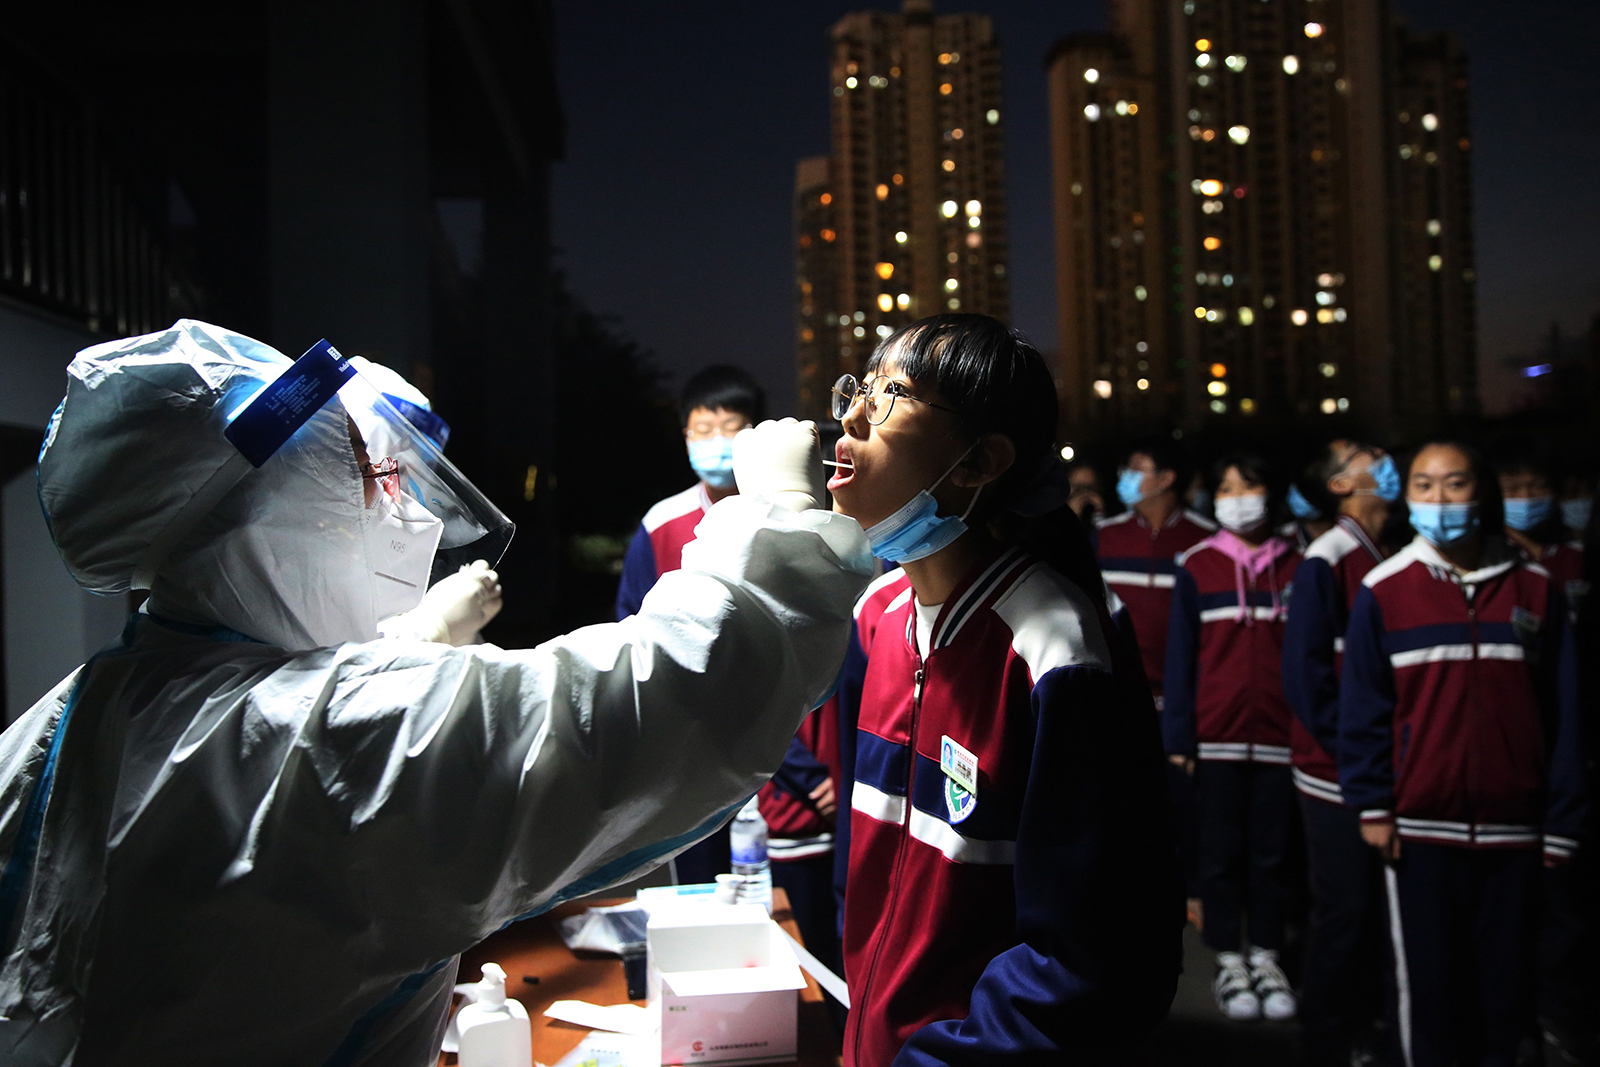 A health worker takes a swab from a middle school student to be tested for Covid-19, as part of a mass testing program following a new coronavirus outbreak in Qingdao, in China's eastern Shandong province, on October 12.